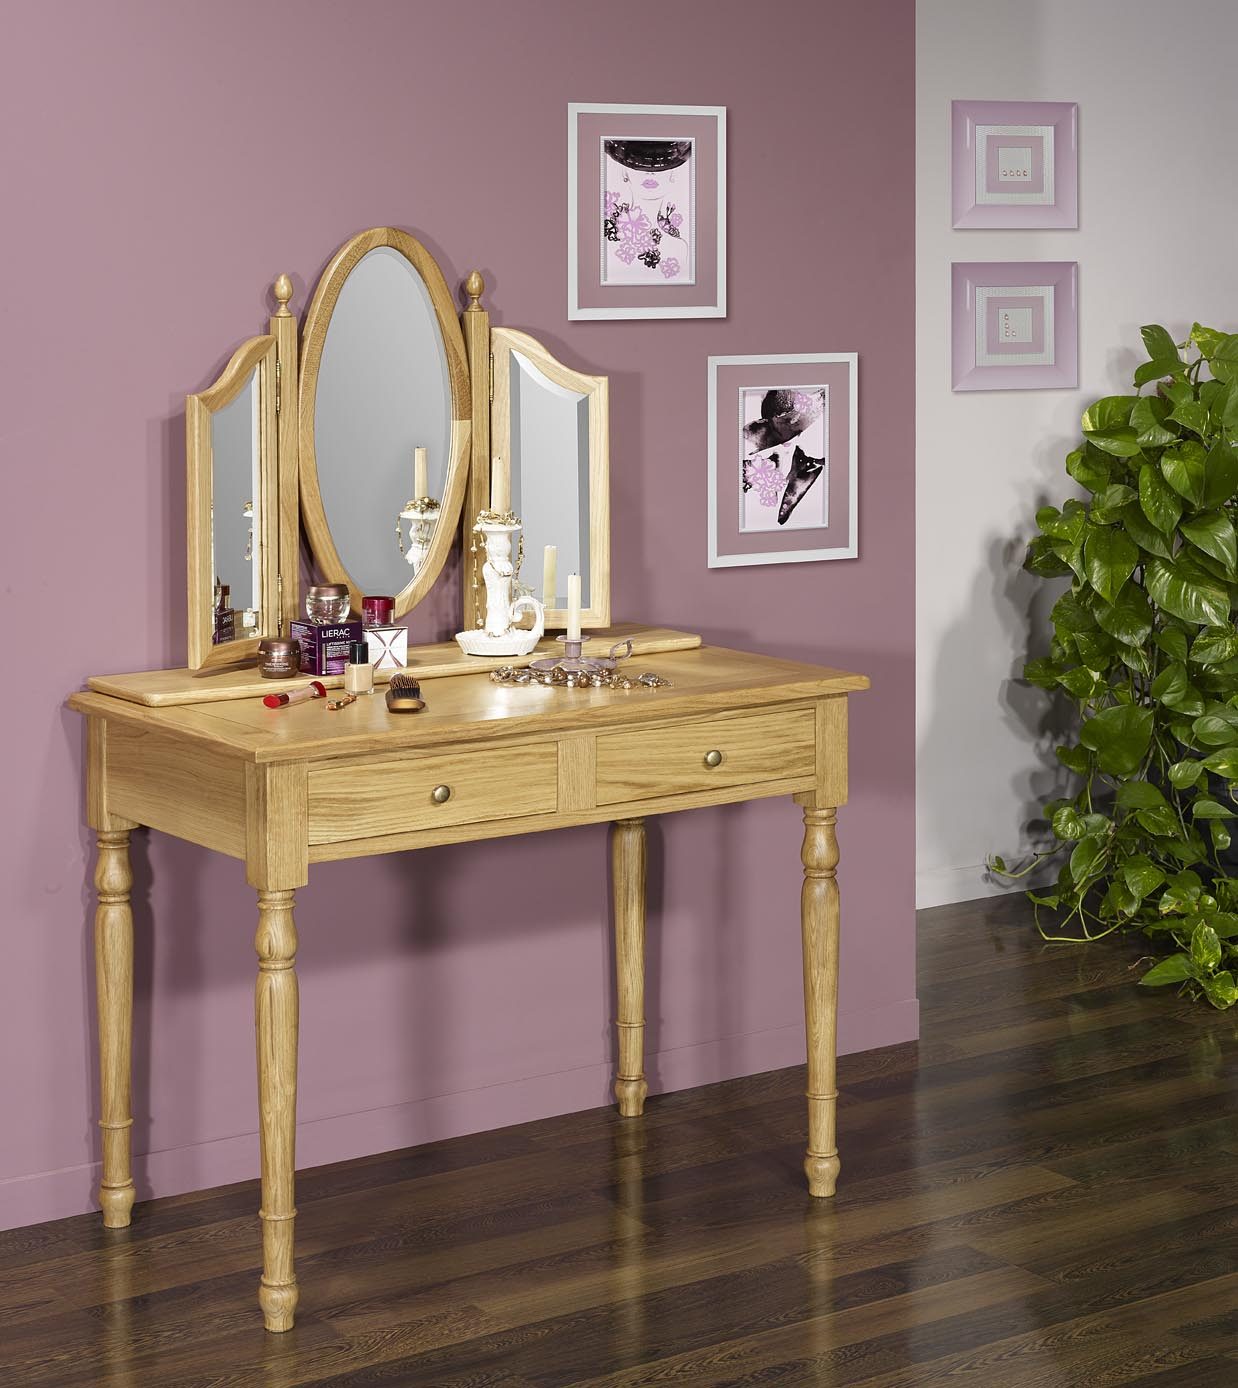 table de toilette ou coiffeuse val rie en ch ne de style louis philippe meuble en ch ne massif. Black Bedroom Furniture Sets. Home Design Ideas